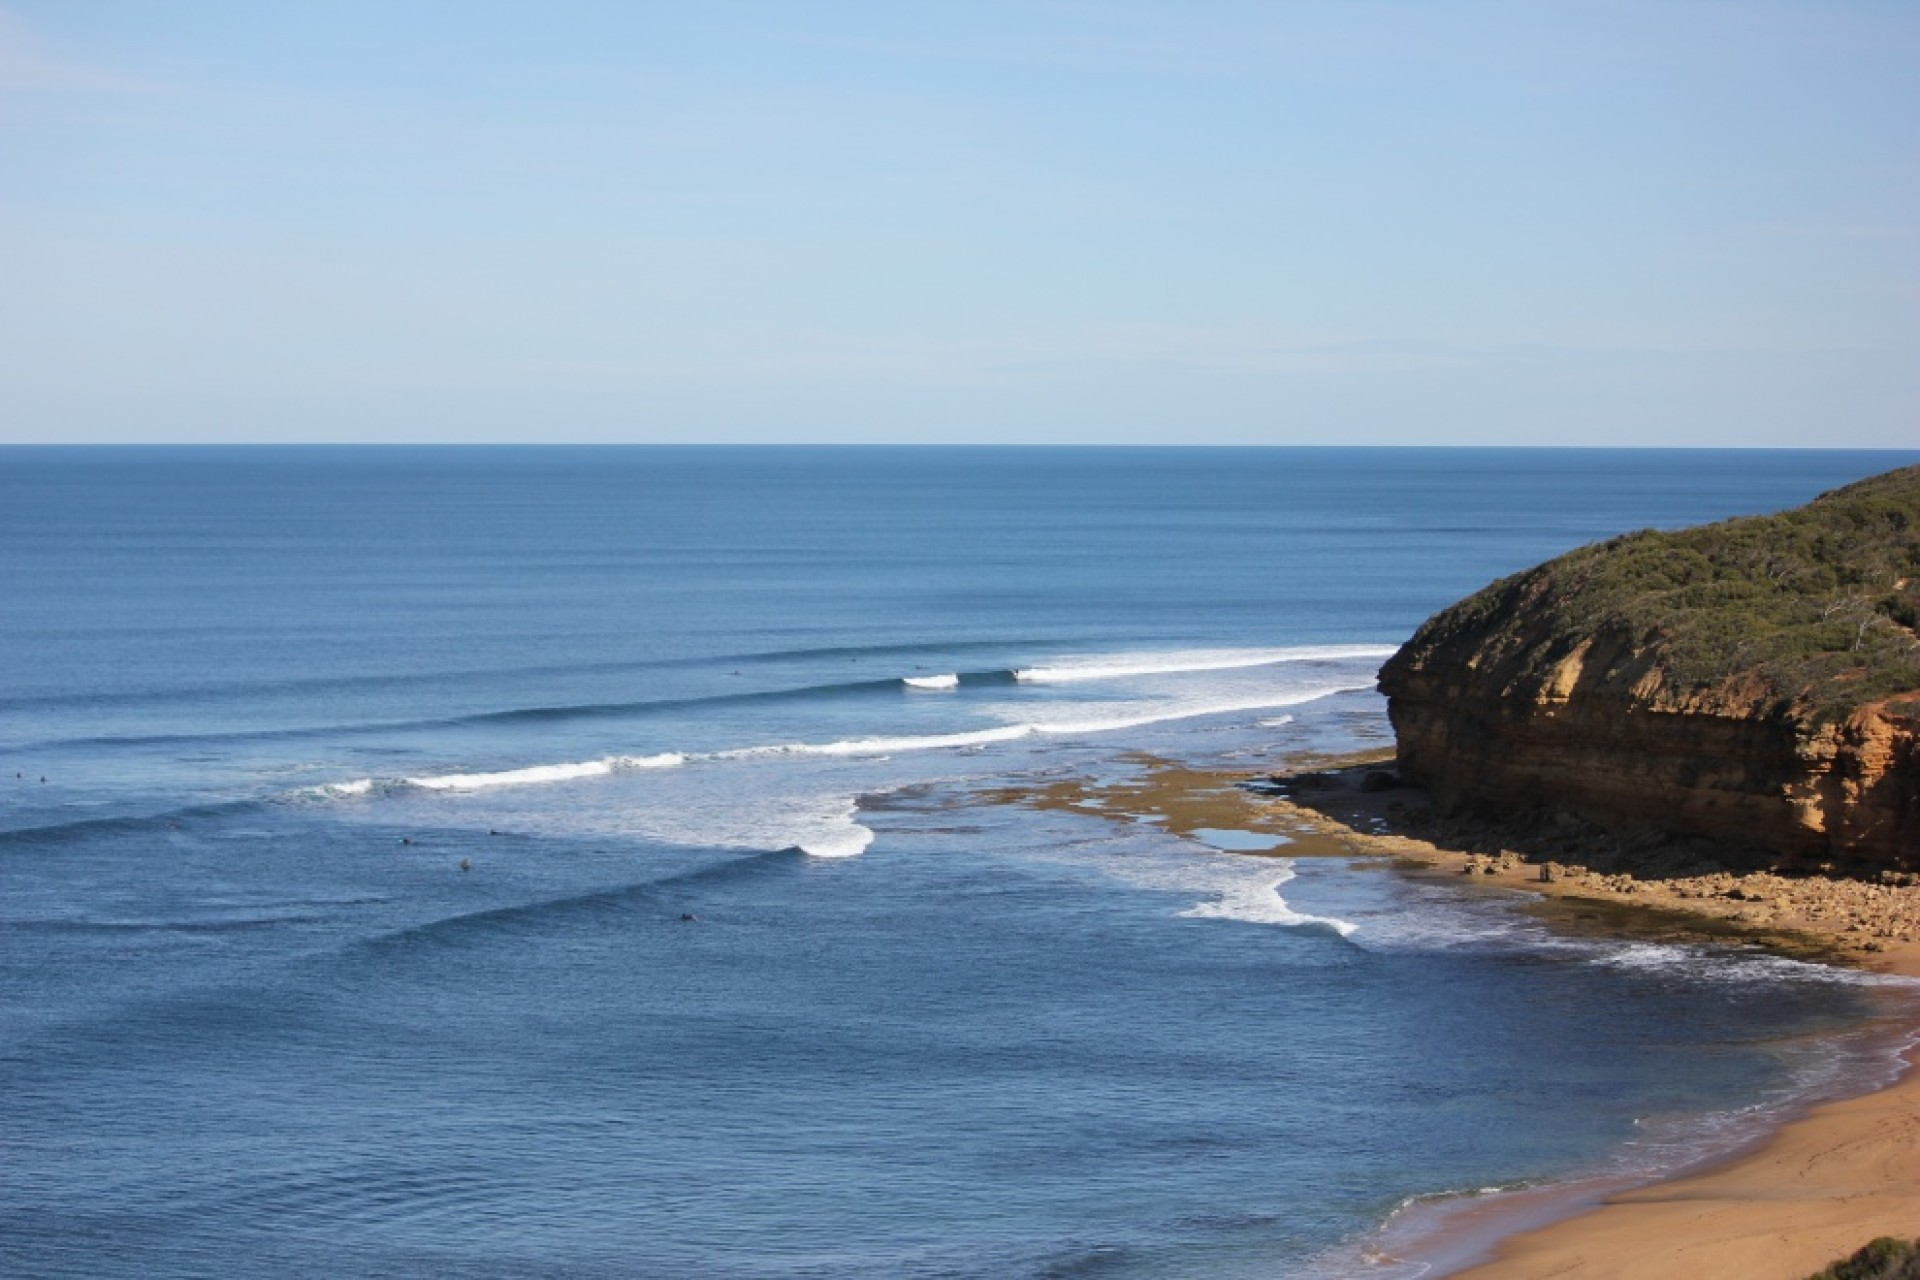 Mathew Dooling's photo of Bells Beach